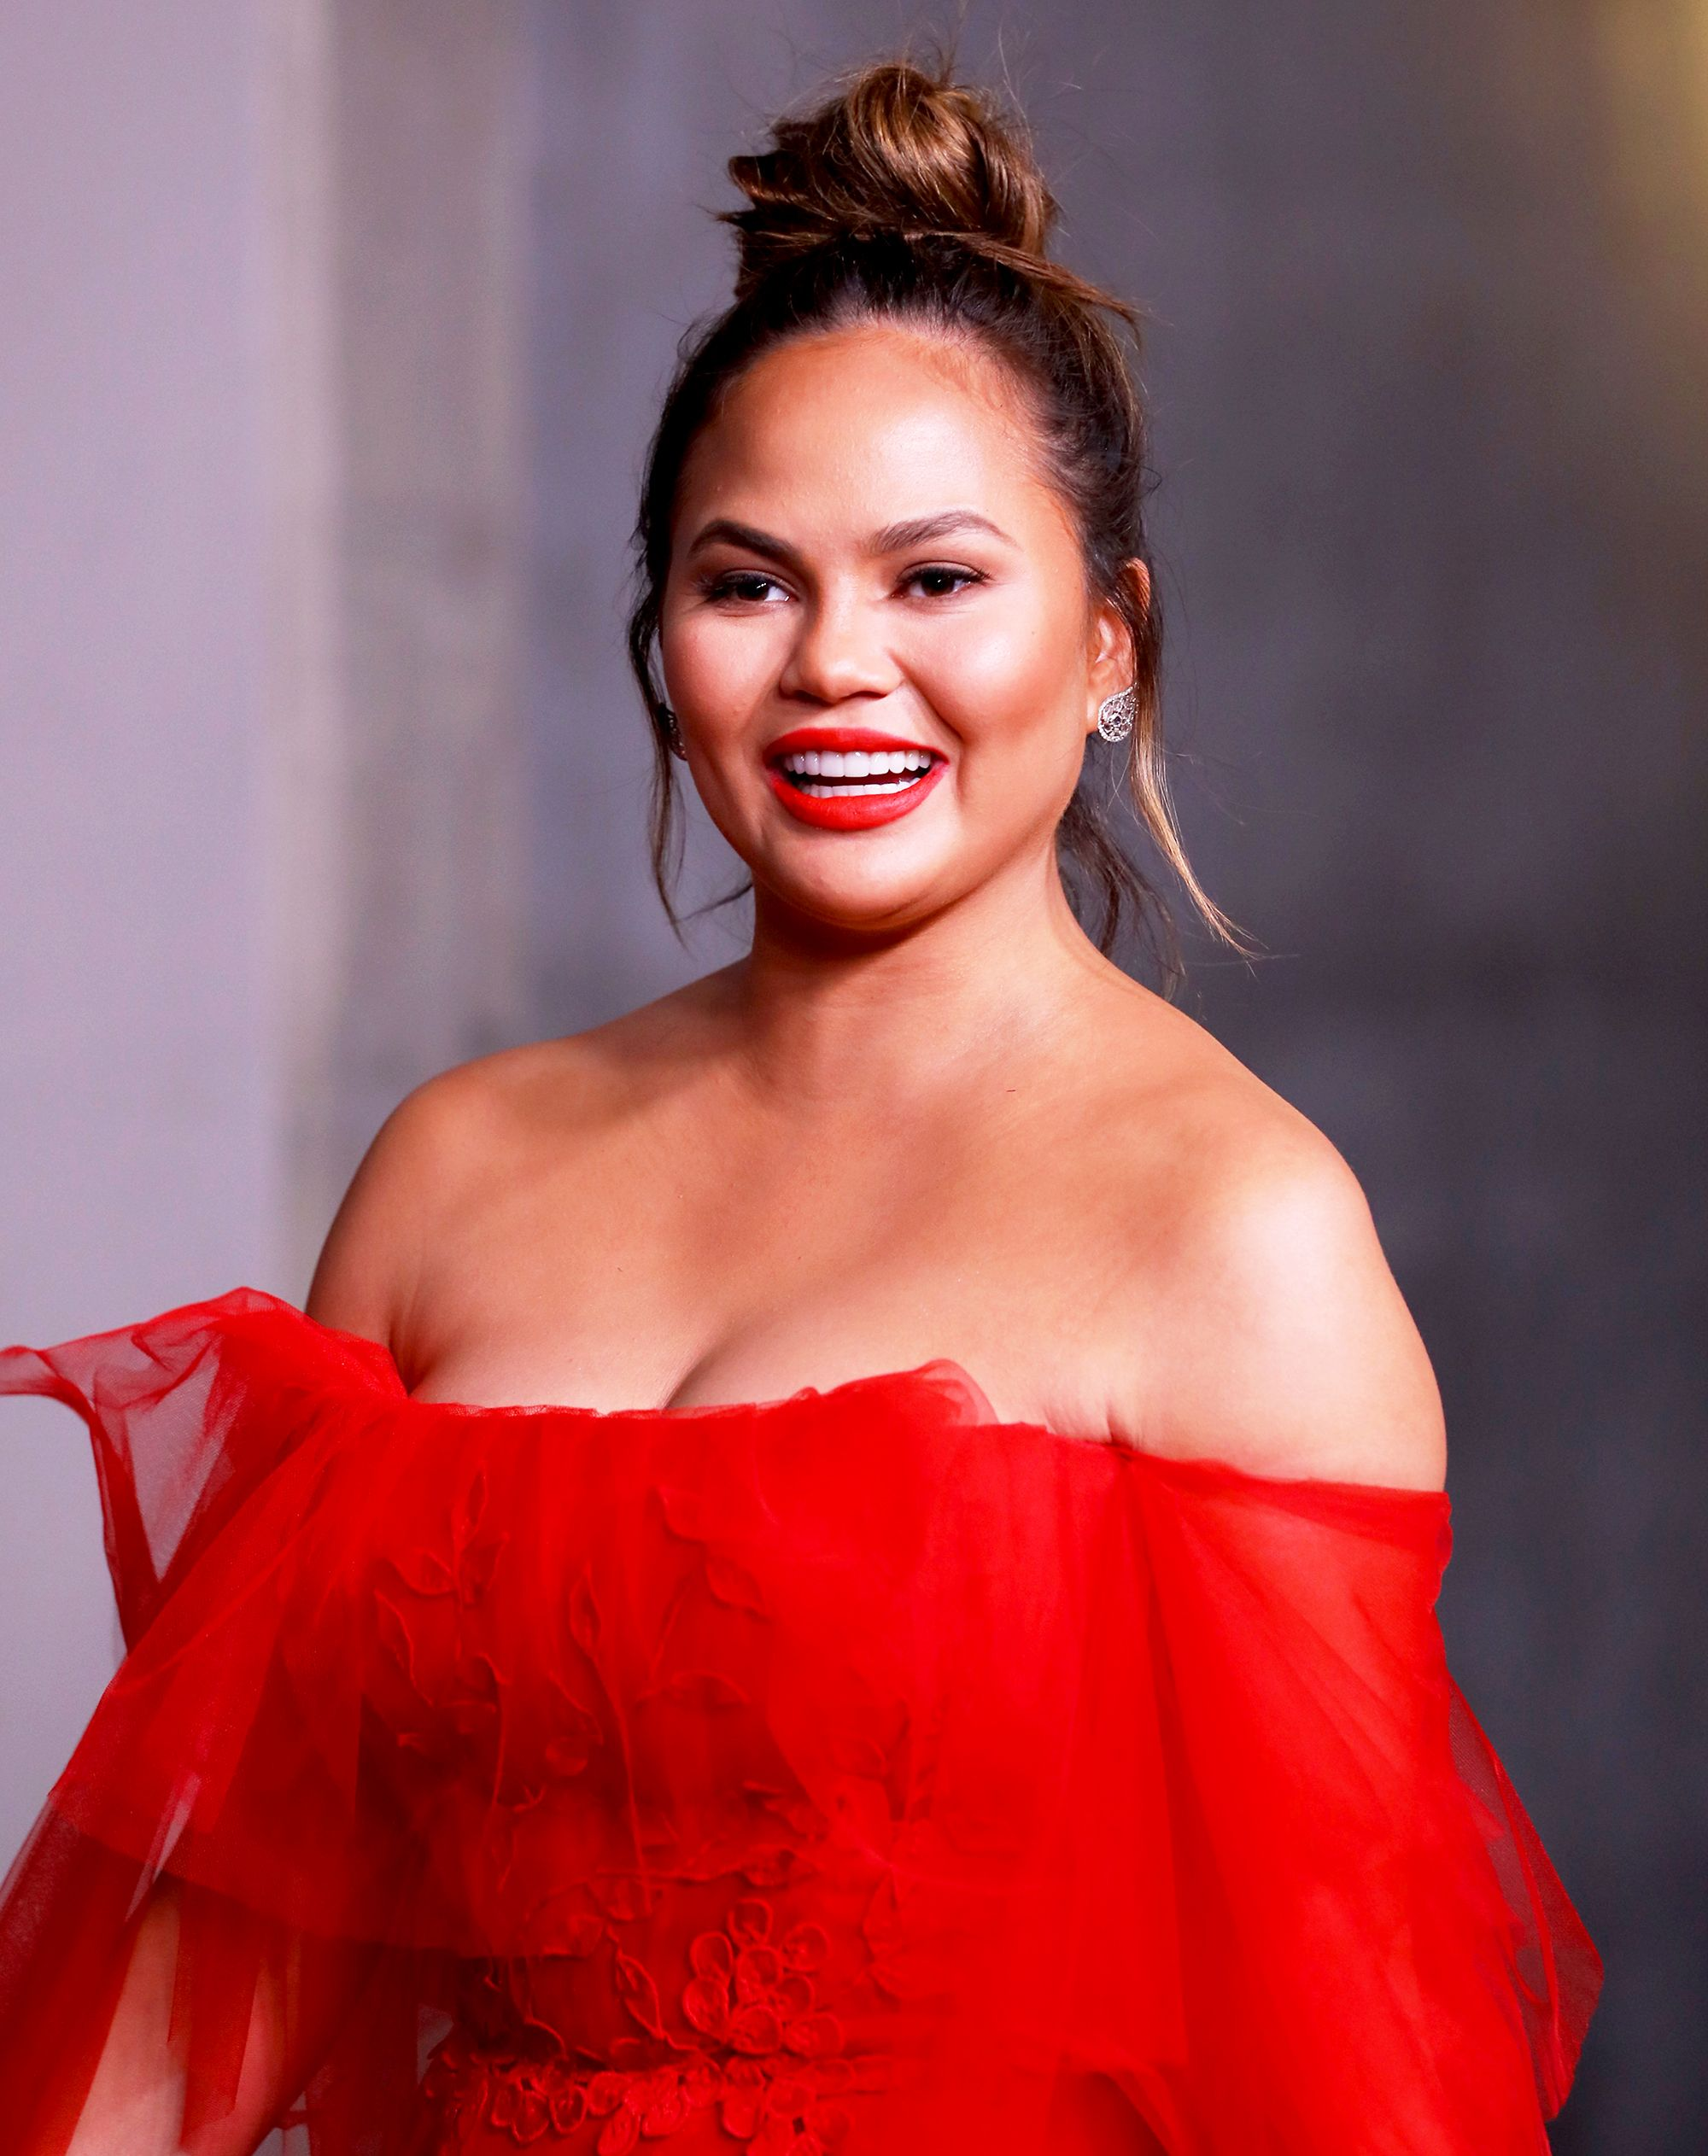 Chrissy Teigen Explained Why She Hasn't Gone to Kanye West's Sunday Service